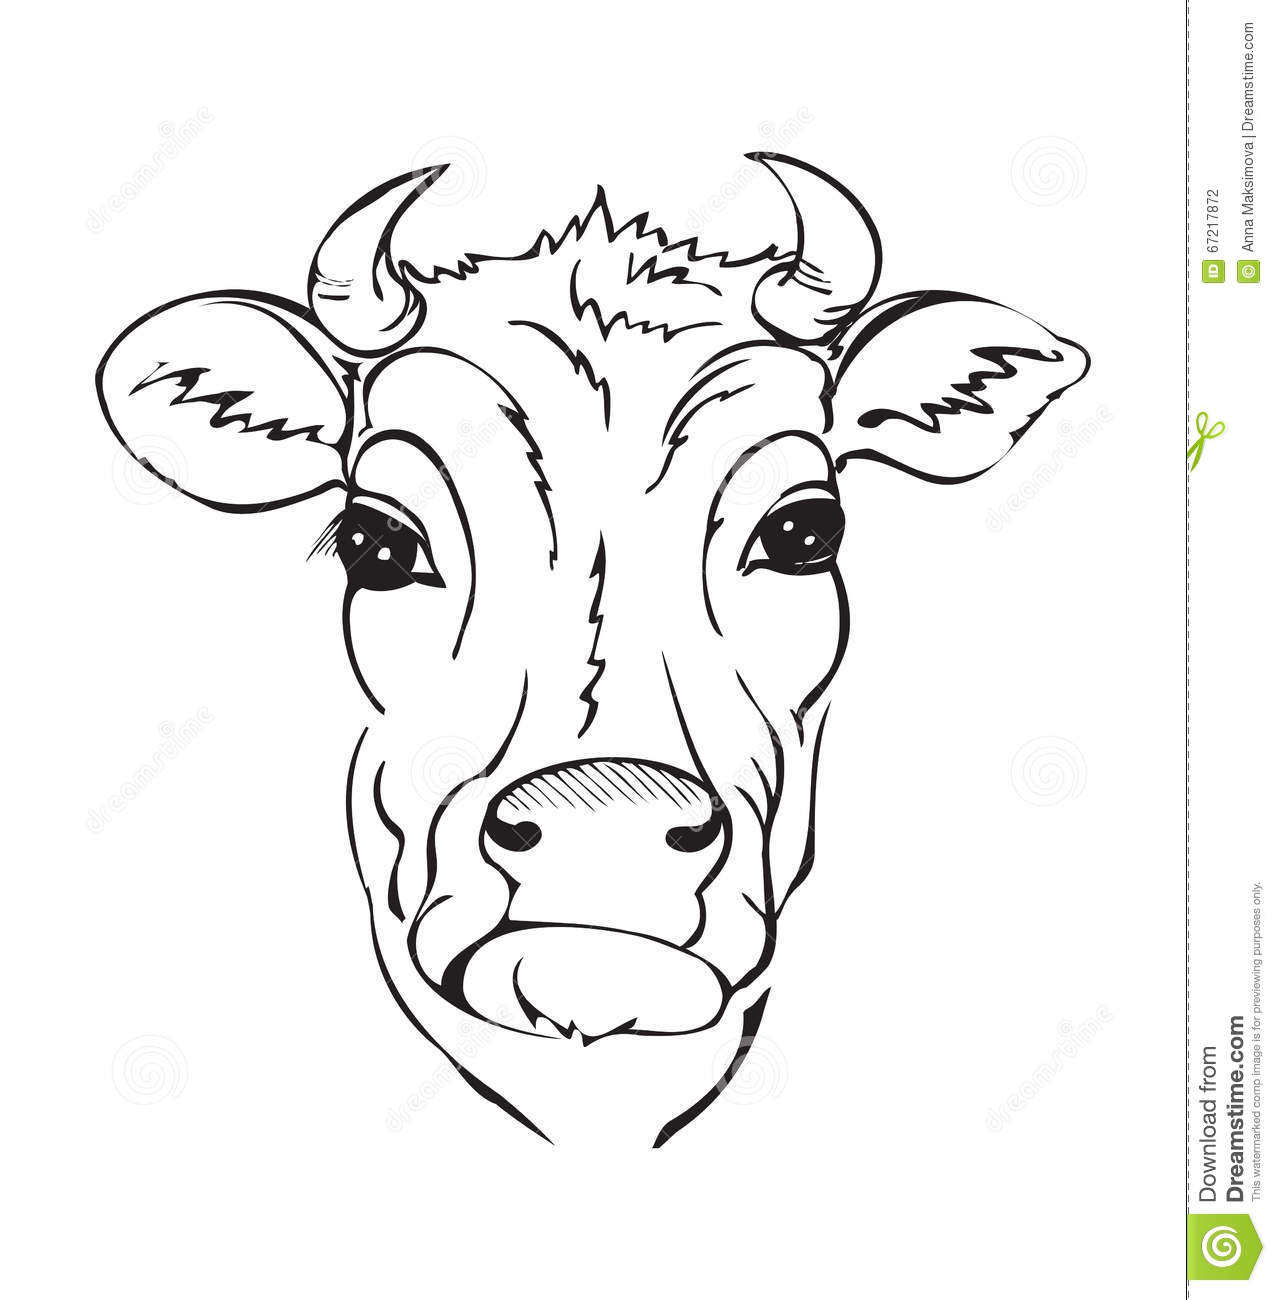 Line Drawing Cow Face : Stylized black and white cow head stock vector